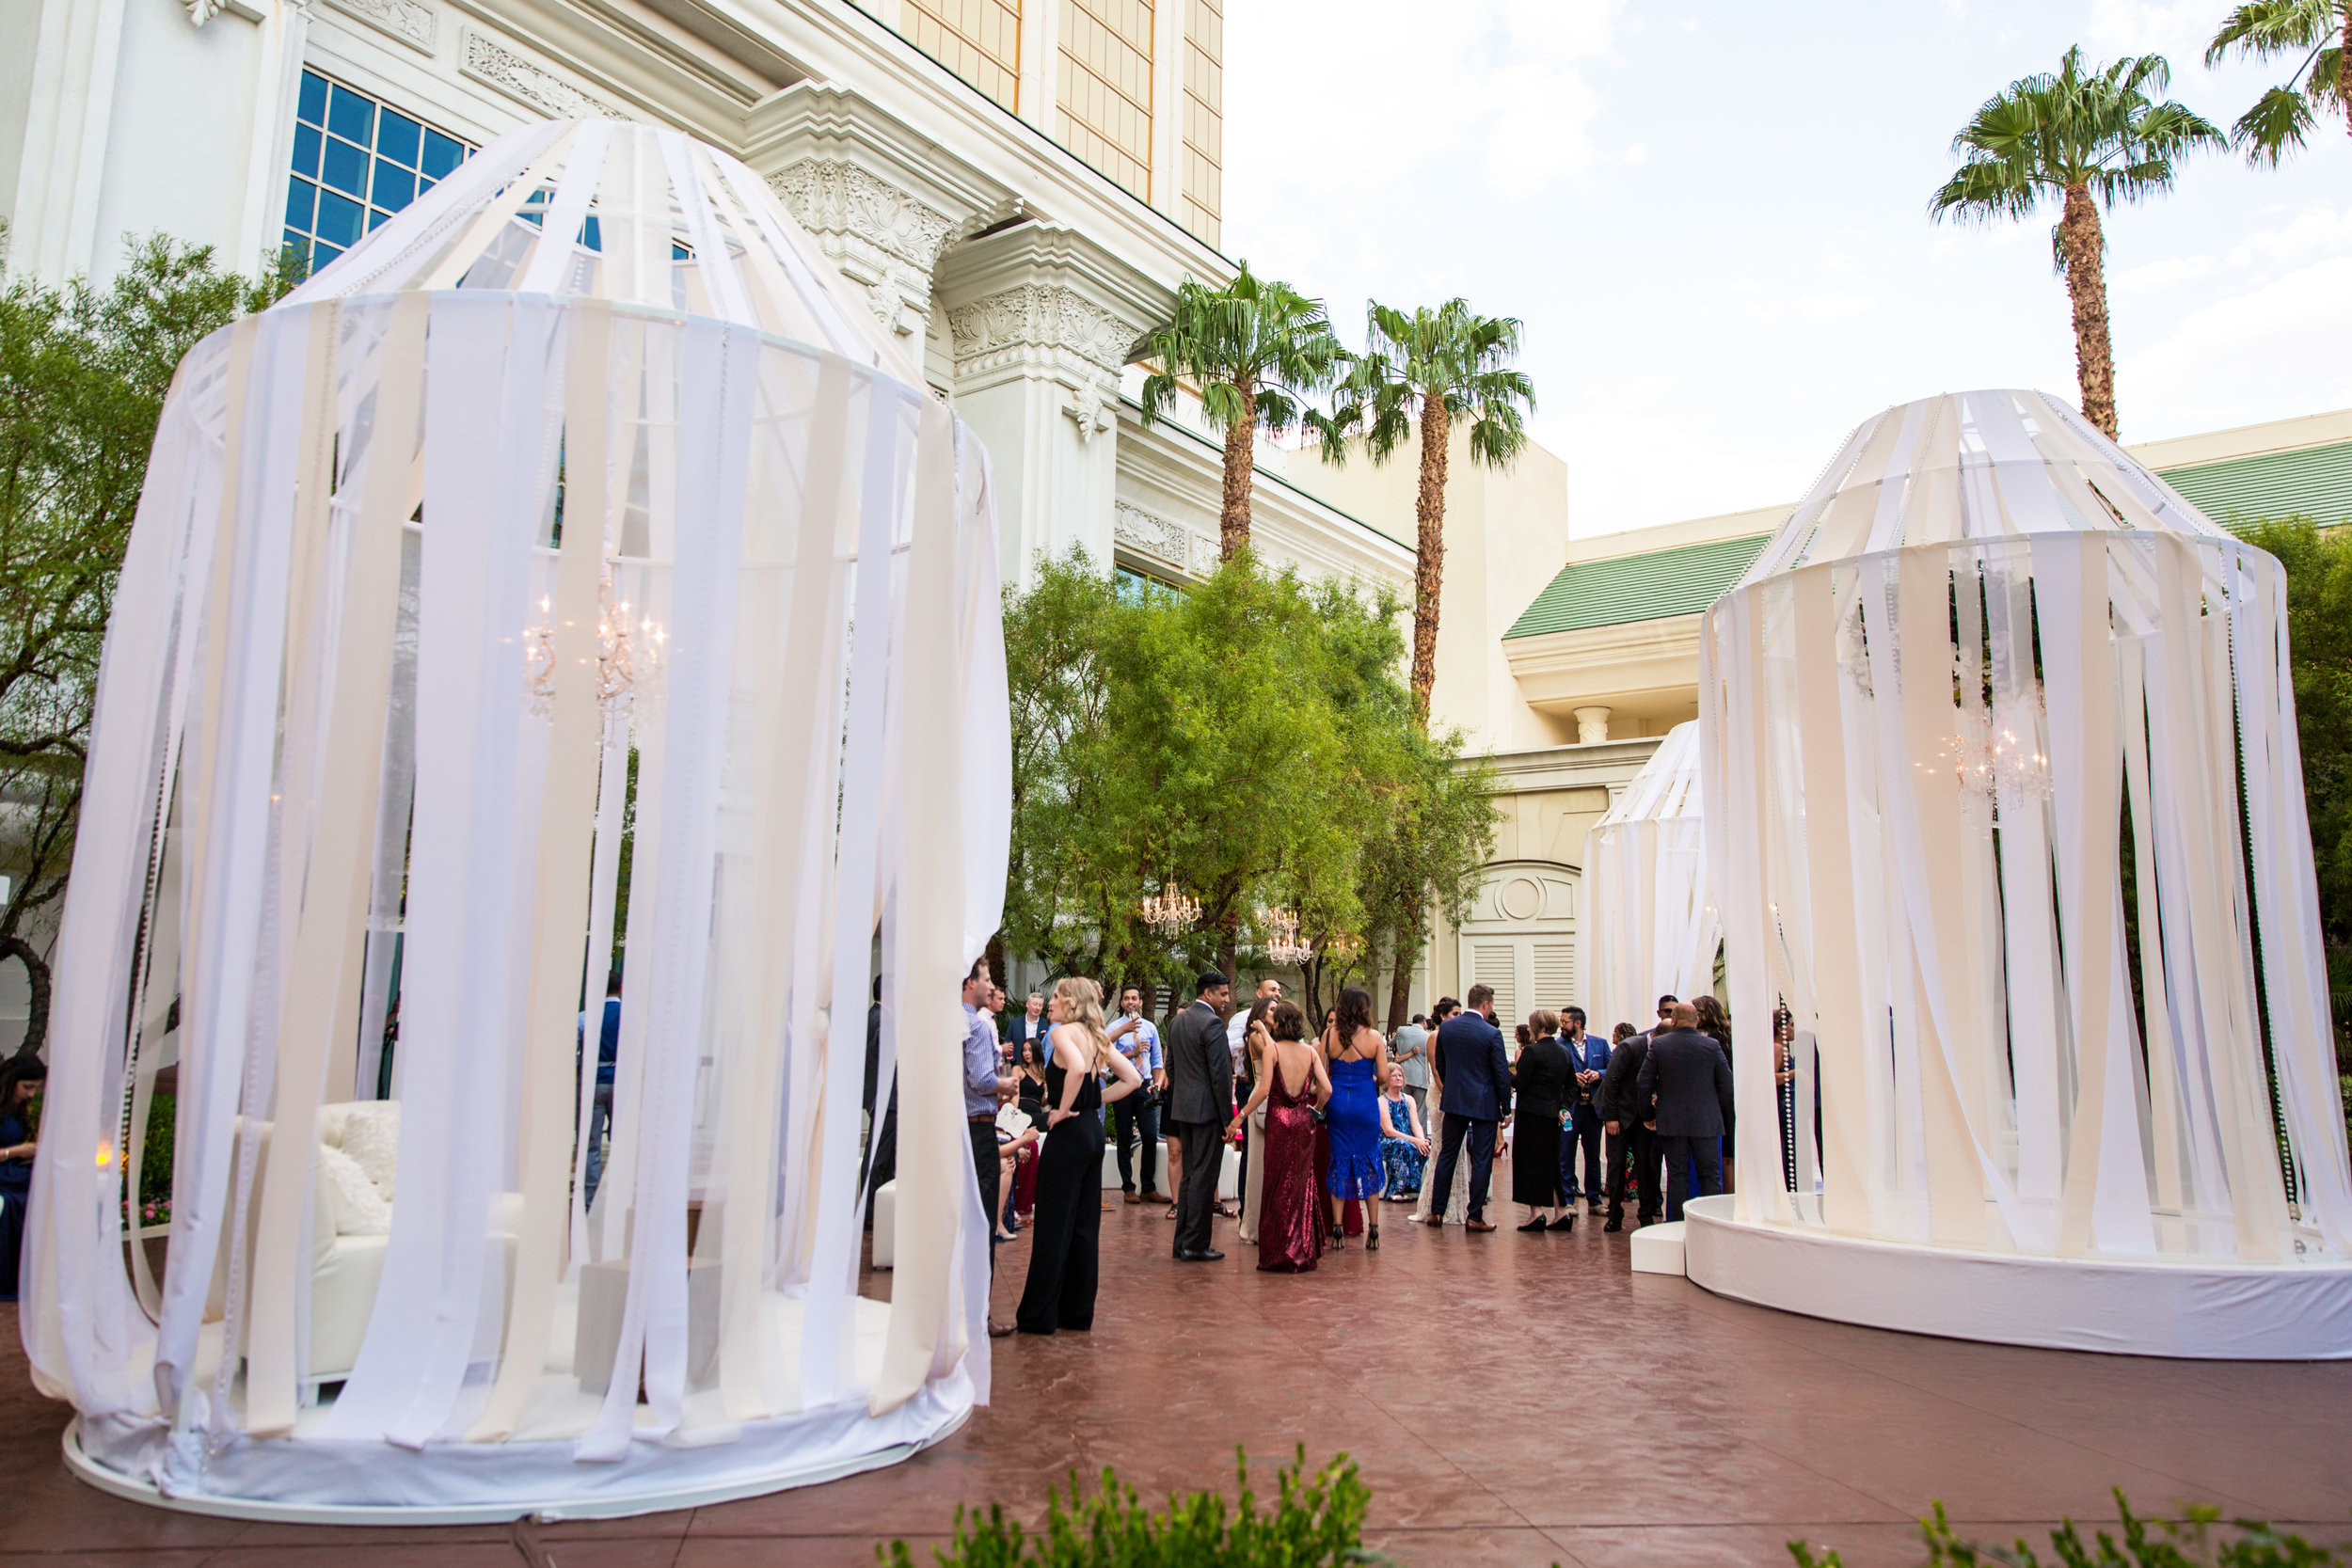 Wedding Cocktail Party.Wedding Planning by  Andrea Eppolito Events  · Photography by  Shandro Photo   · Wedding Venue  Four Seasons Las Vegas  · Floral and Decor by  Destination by Design  · Cake by  Four Seasons Las Vegas  · Chandeliers and Lighting by  LED Unplugged  · Dress by  Berta